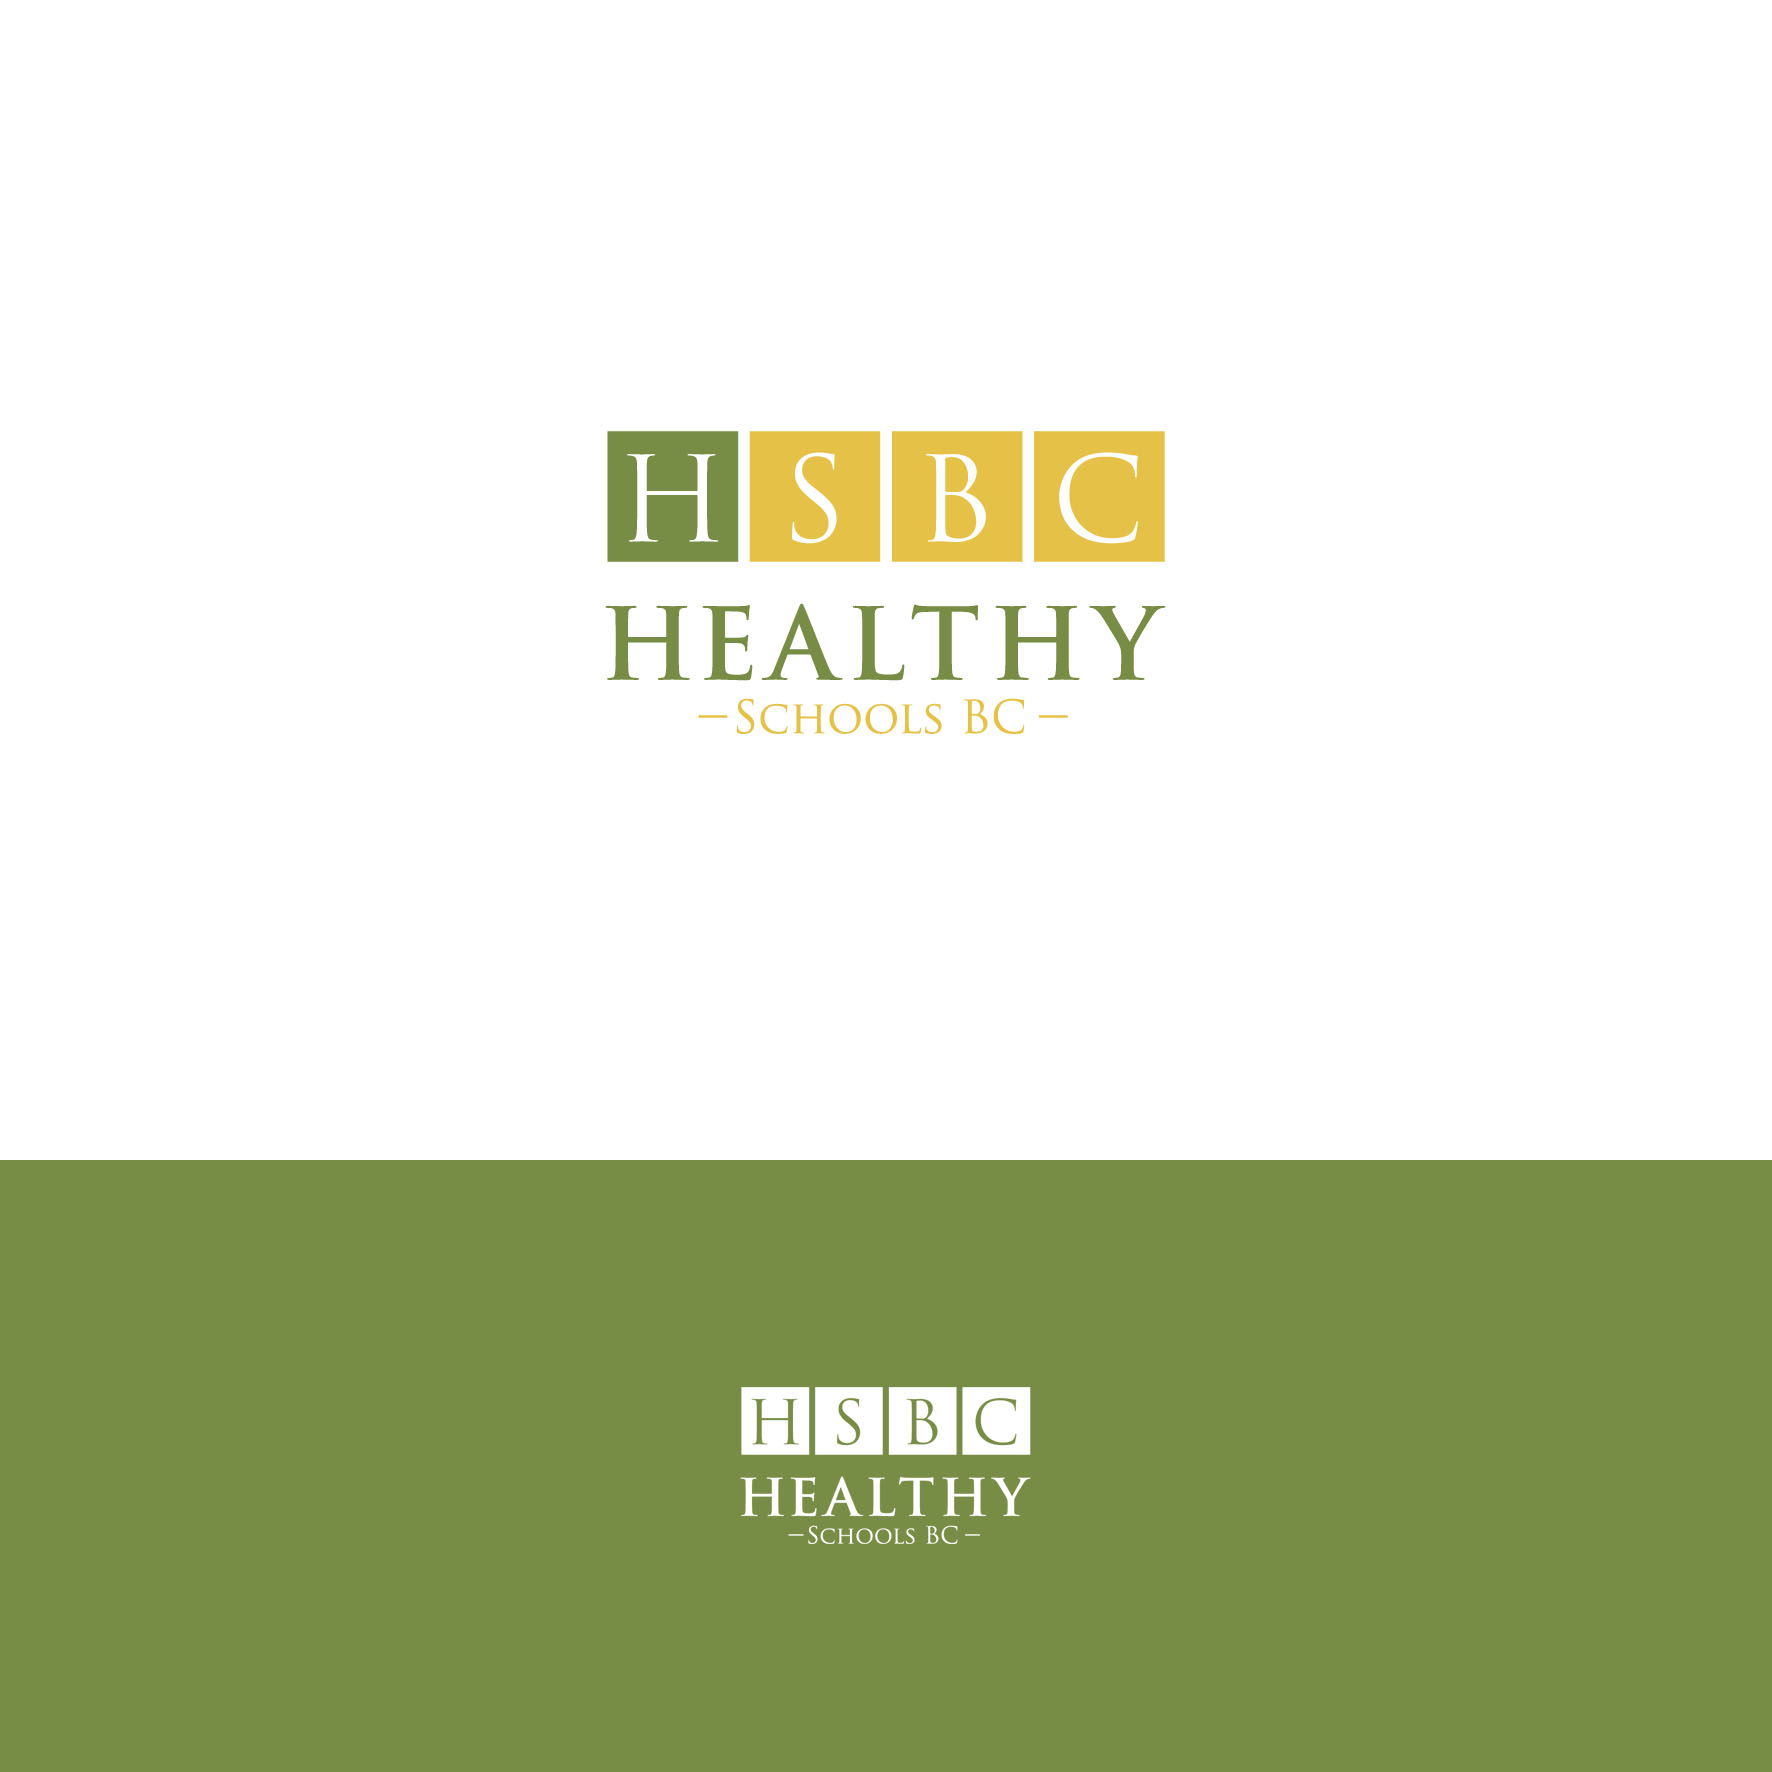 Logo Design by tanganpanas - Entry No. 294 in the Logo Design Contest SImple, Creative and Clean Logo Design for Healthy Schools British Columbia, Canada.